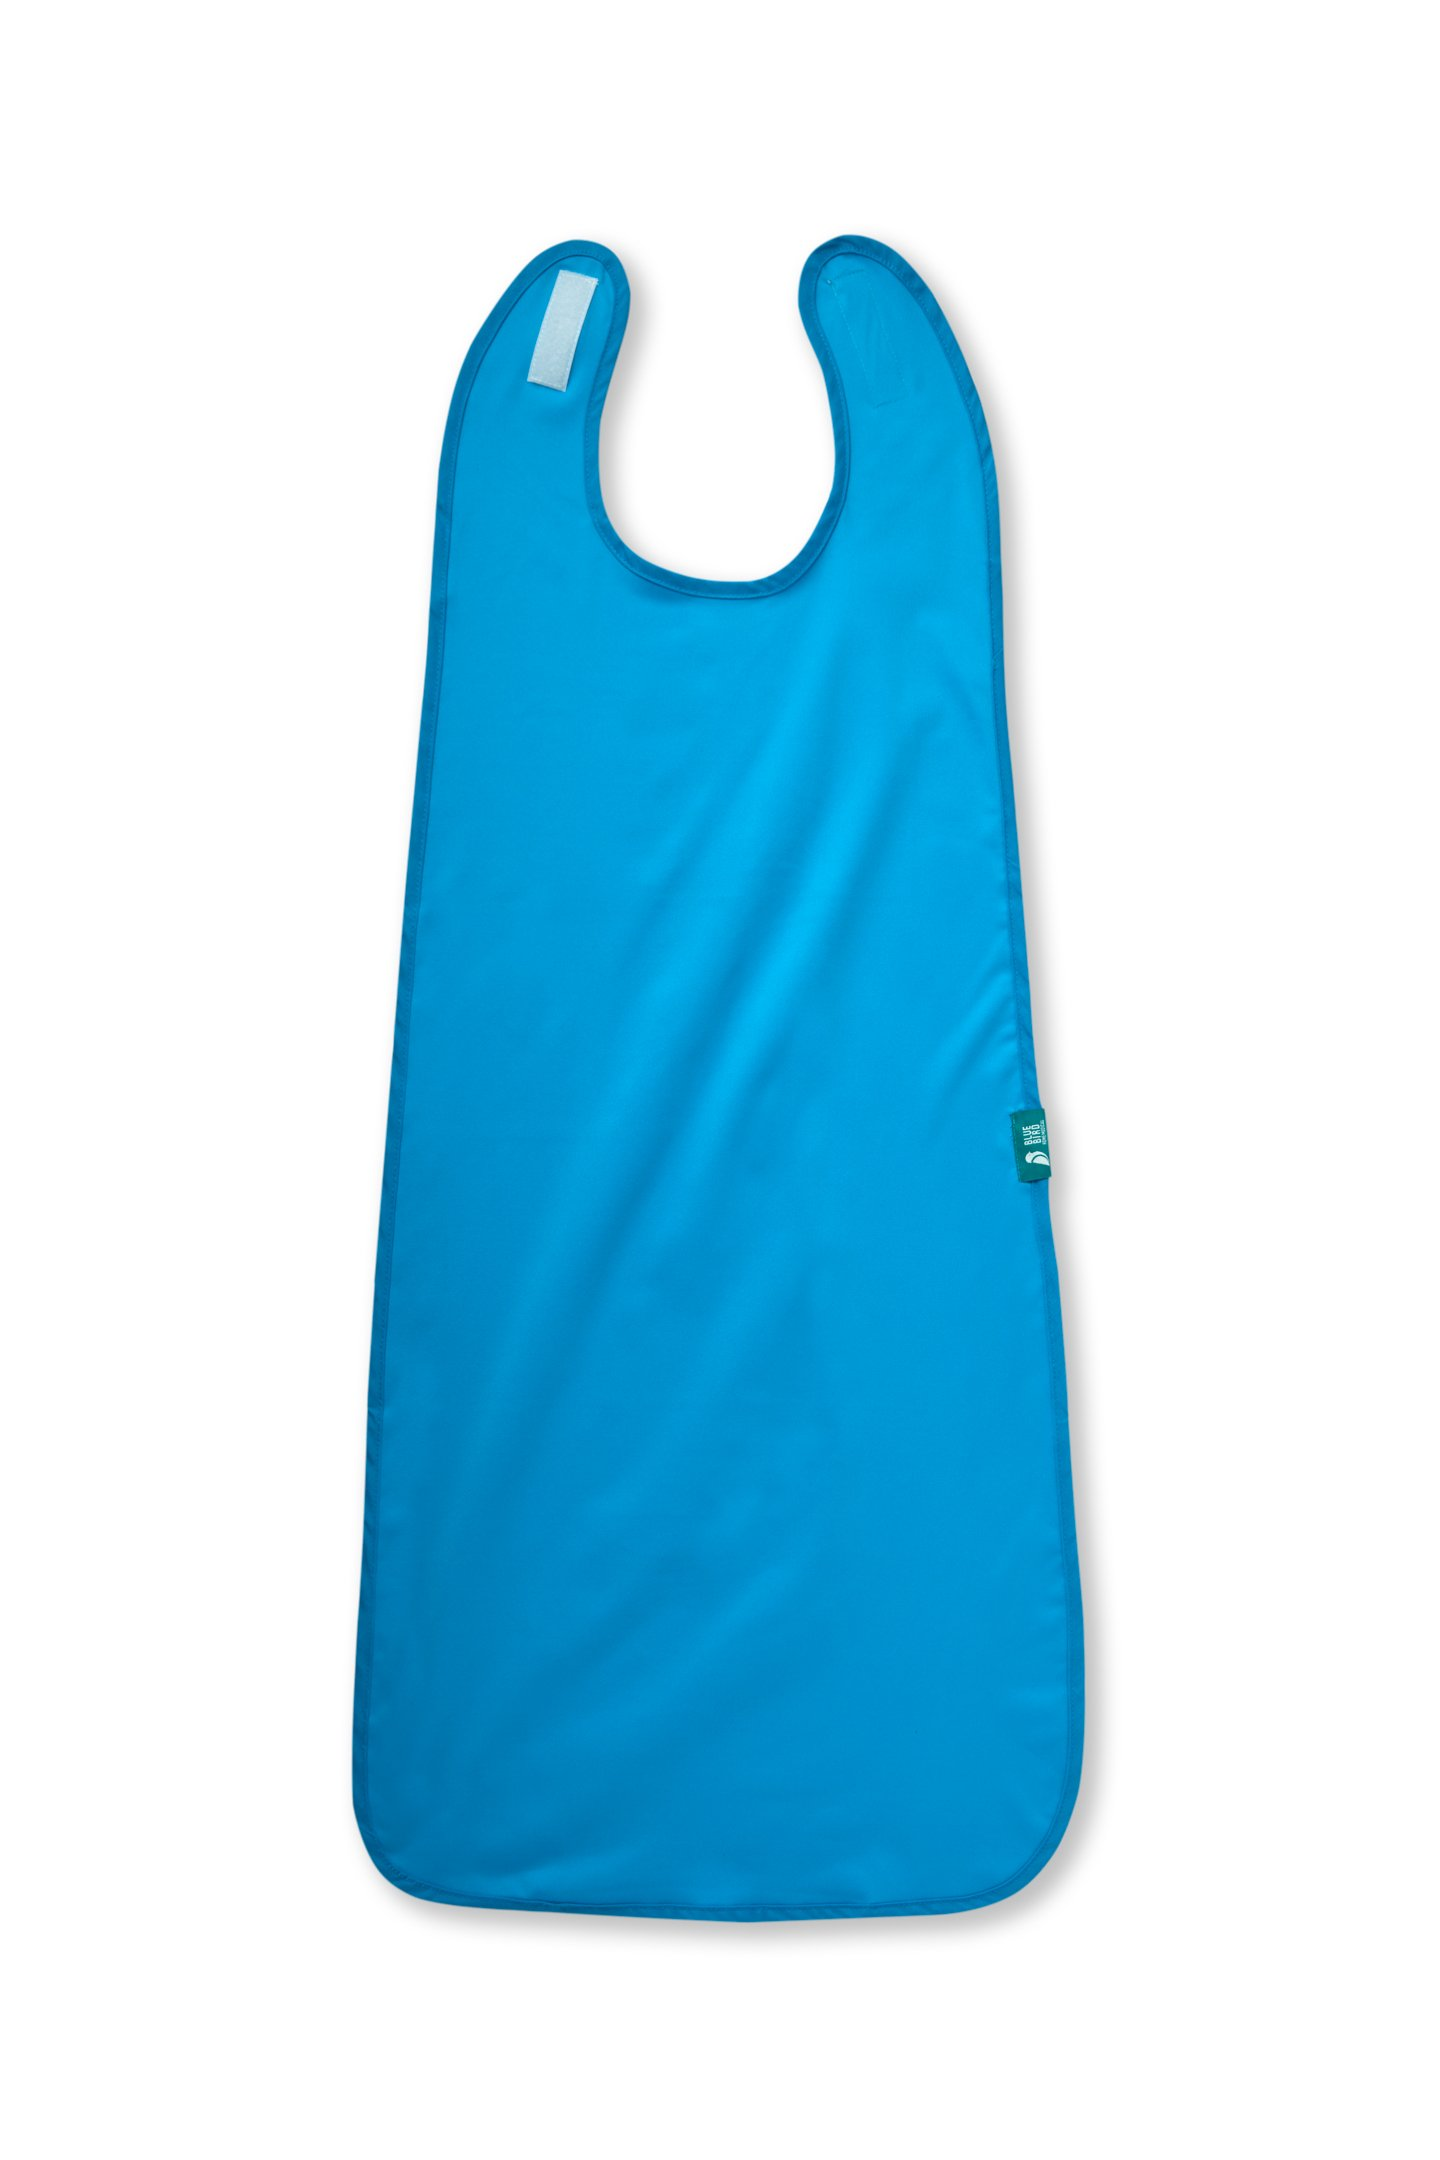 Bluebird HM Extra Long and Waterproof Adult Bib Clothing Protector, Teal